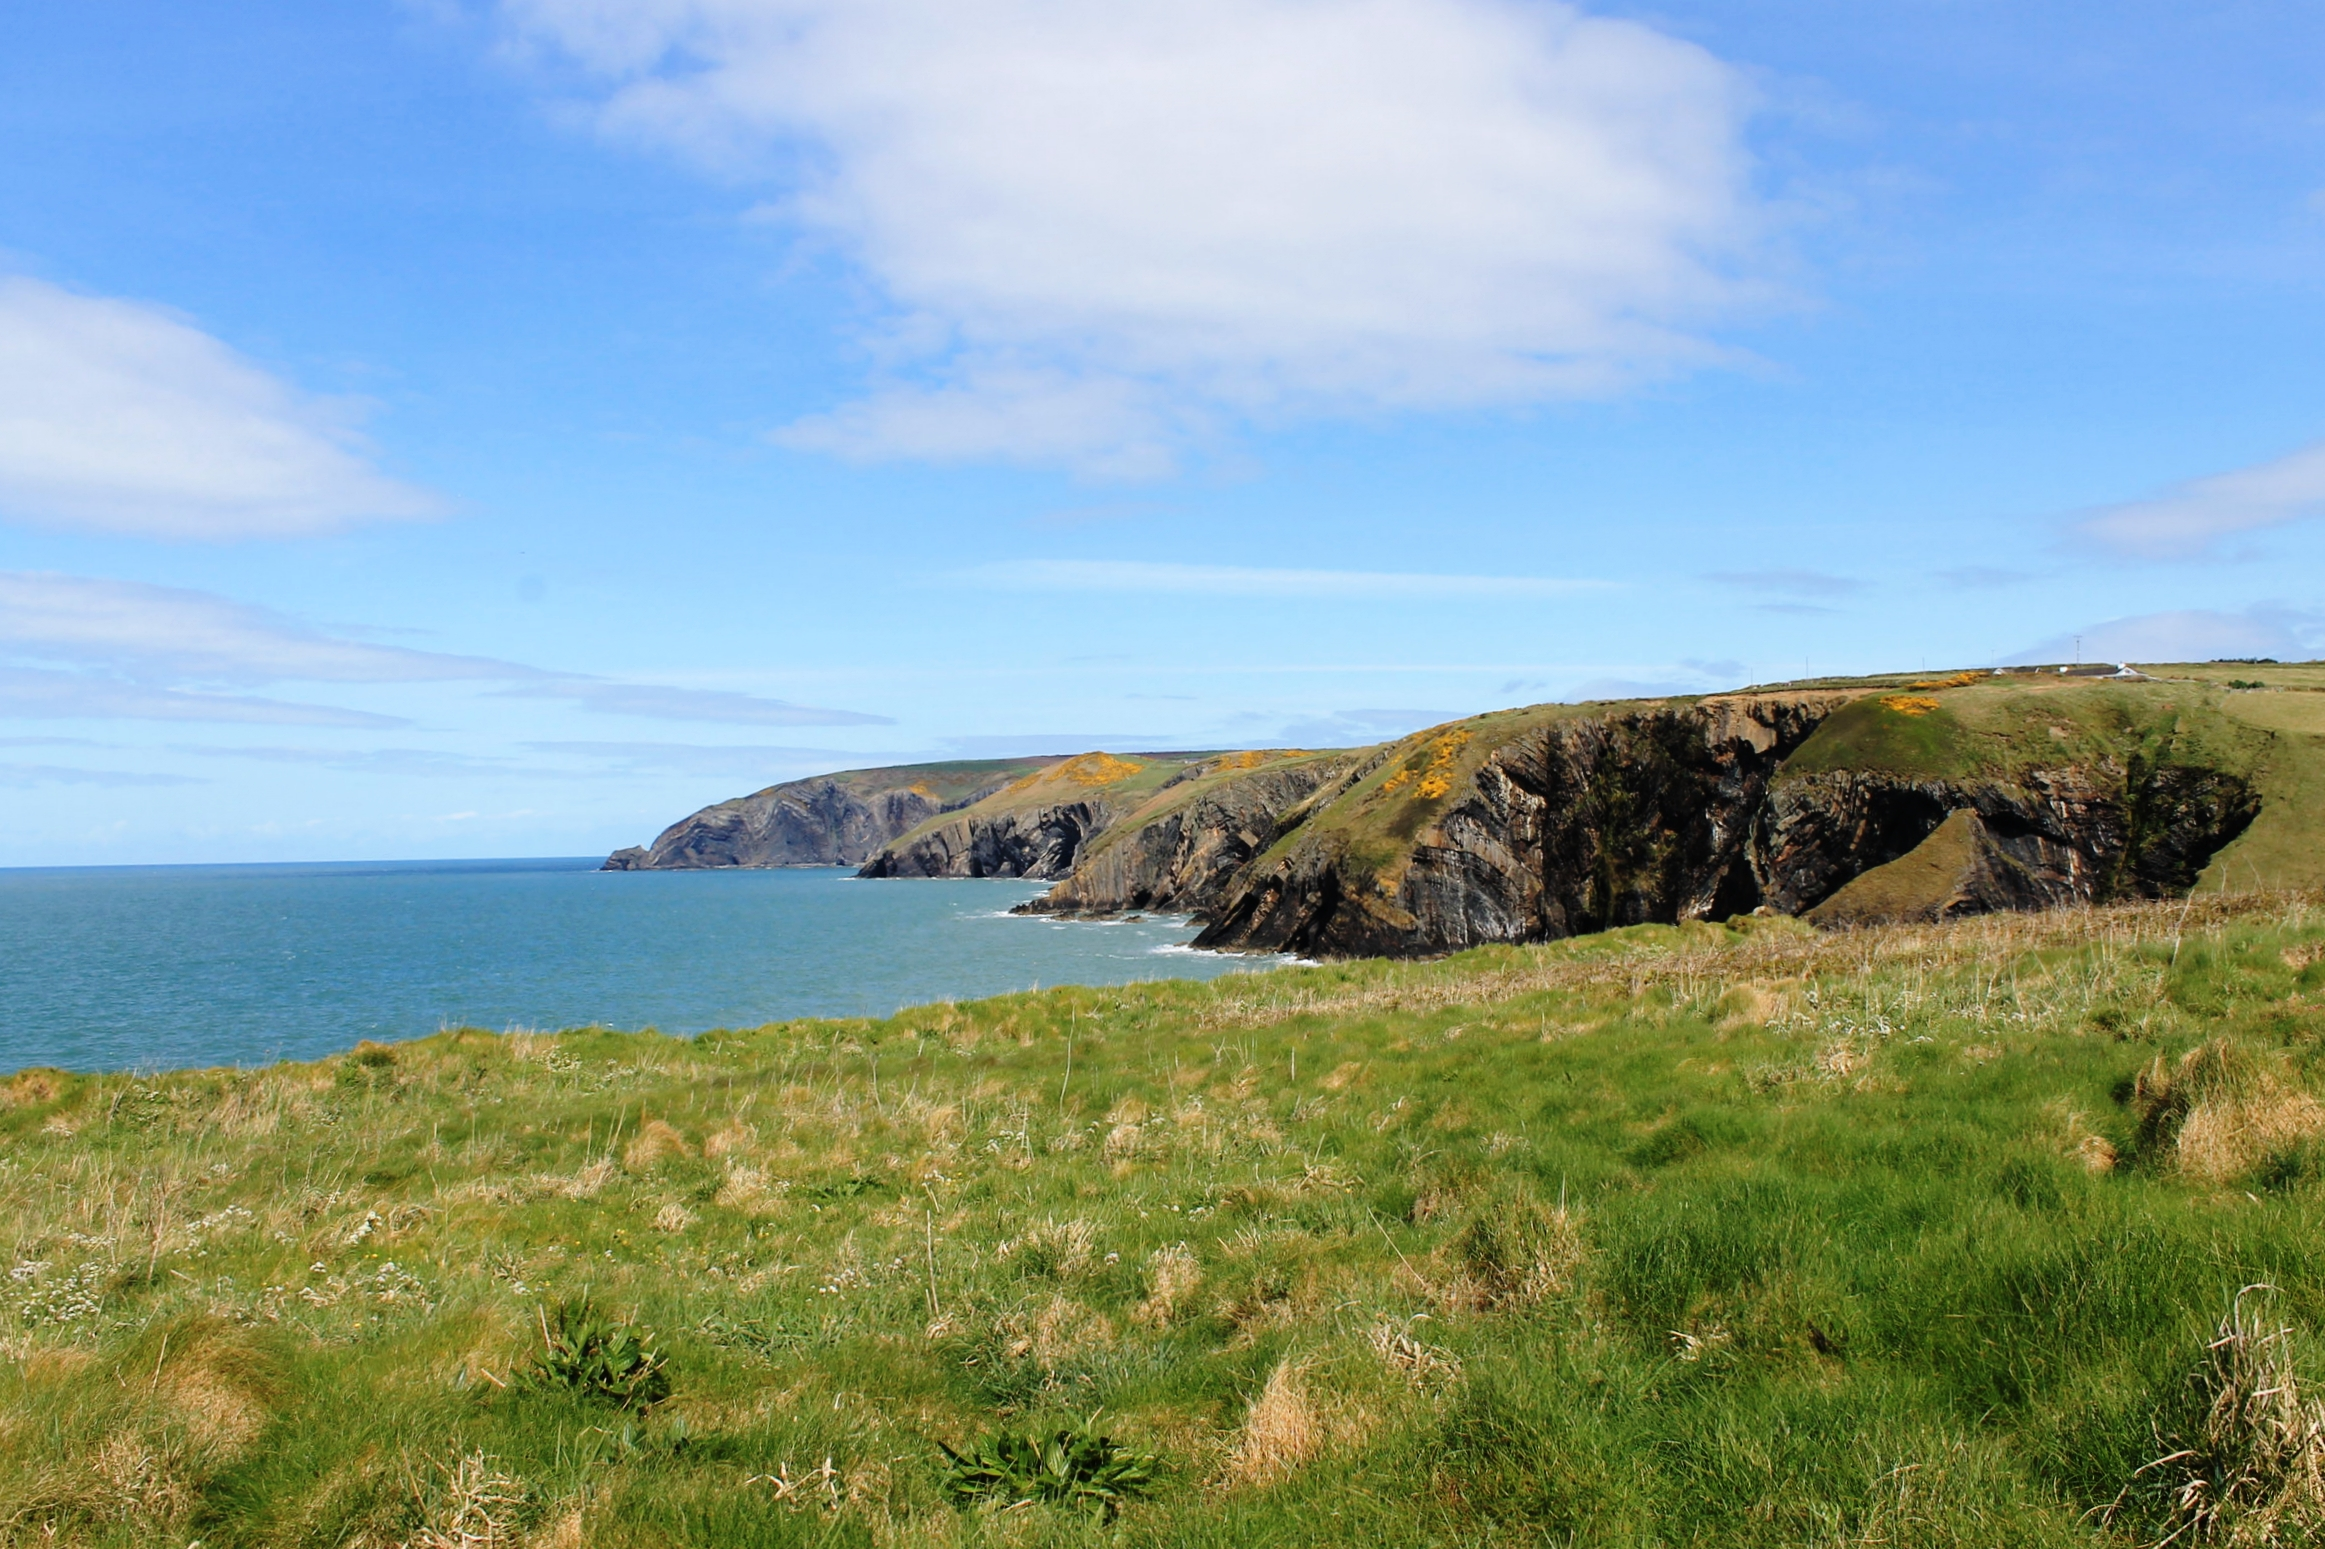 View of the Witches Cauldron on the Pembrokeshire Coast Path near Moylegrove, where we had a picnic on the grass